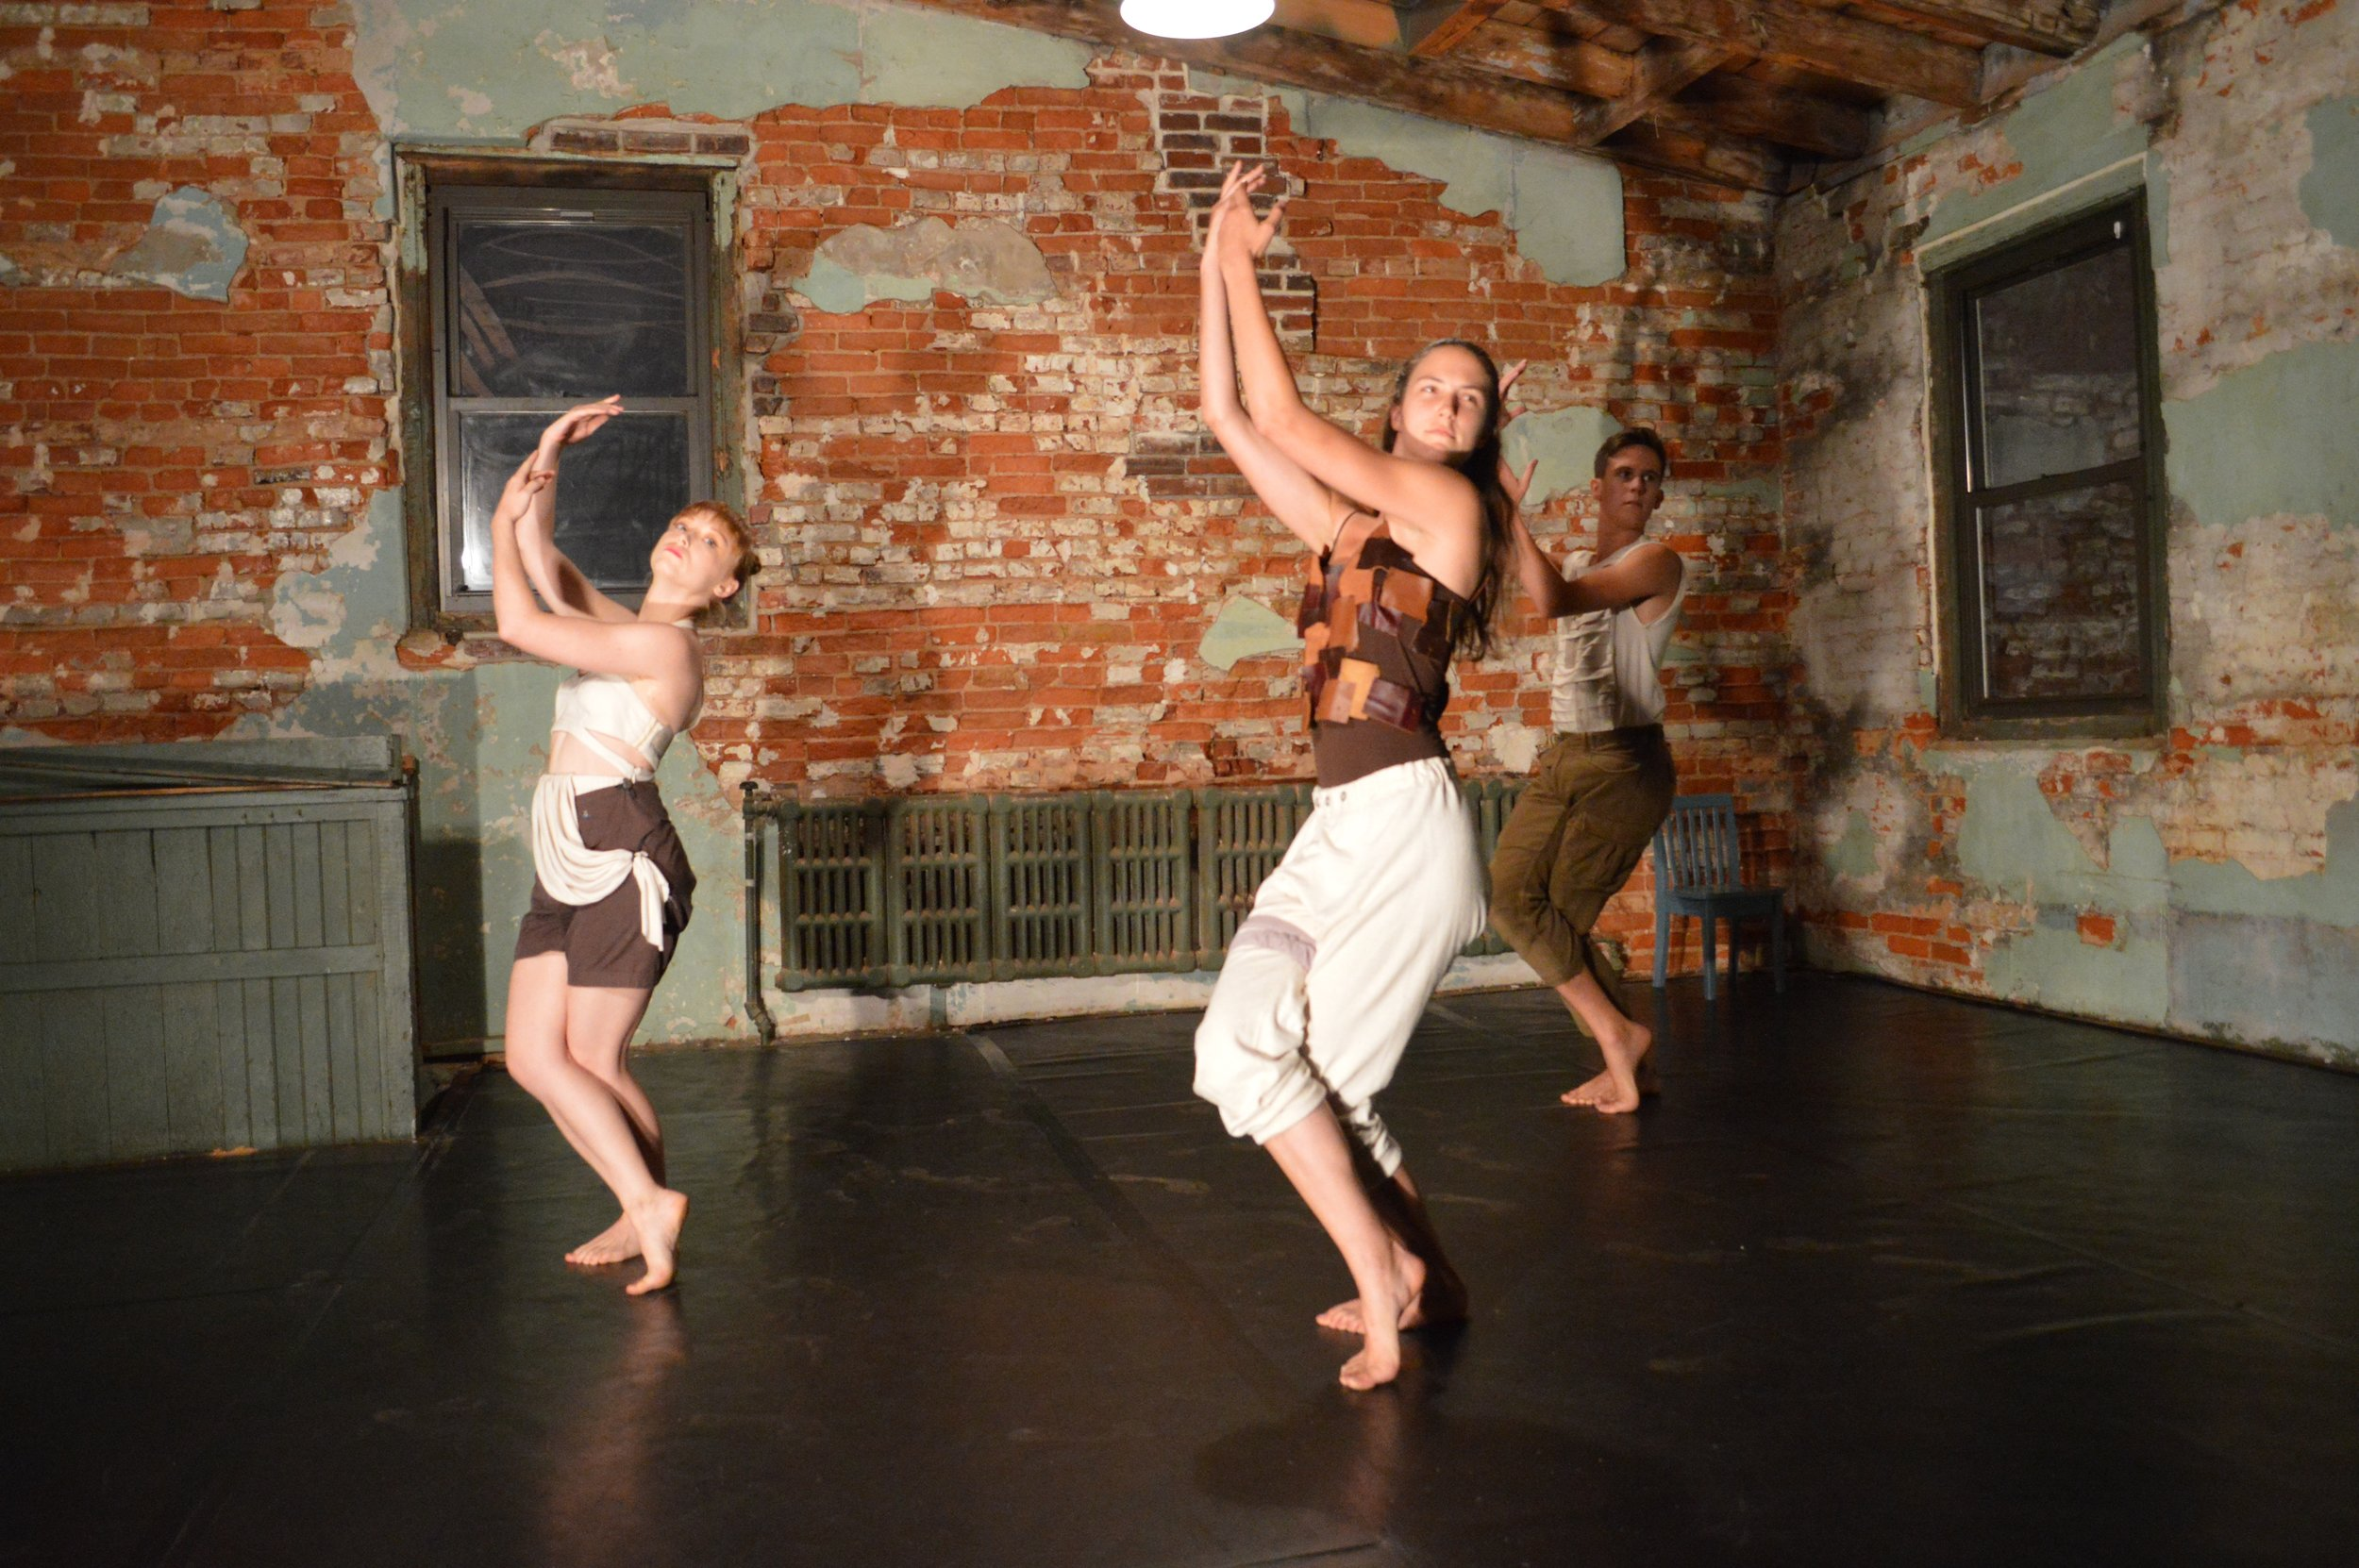 Bacchic  performance at The Iron Factory in Philadelphia.  Photo by Annabelle Cousins